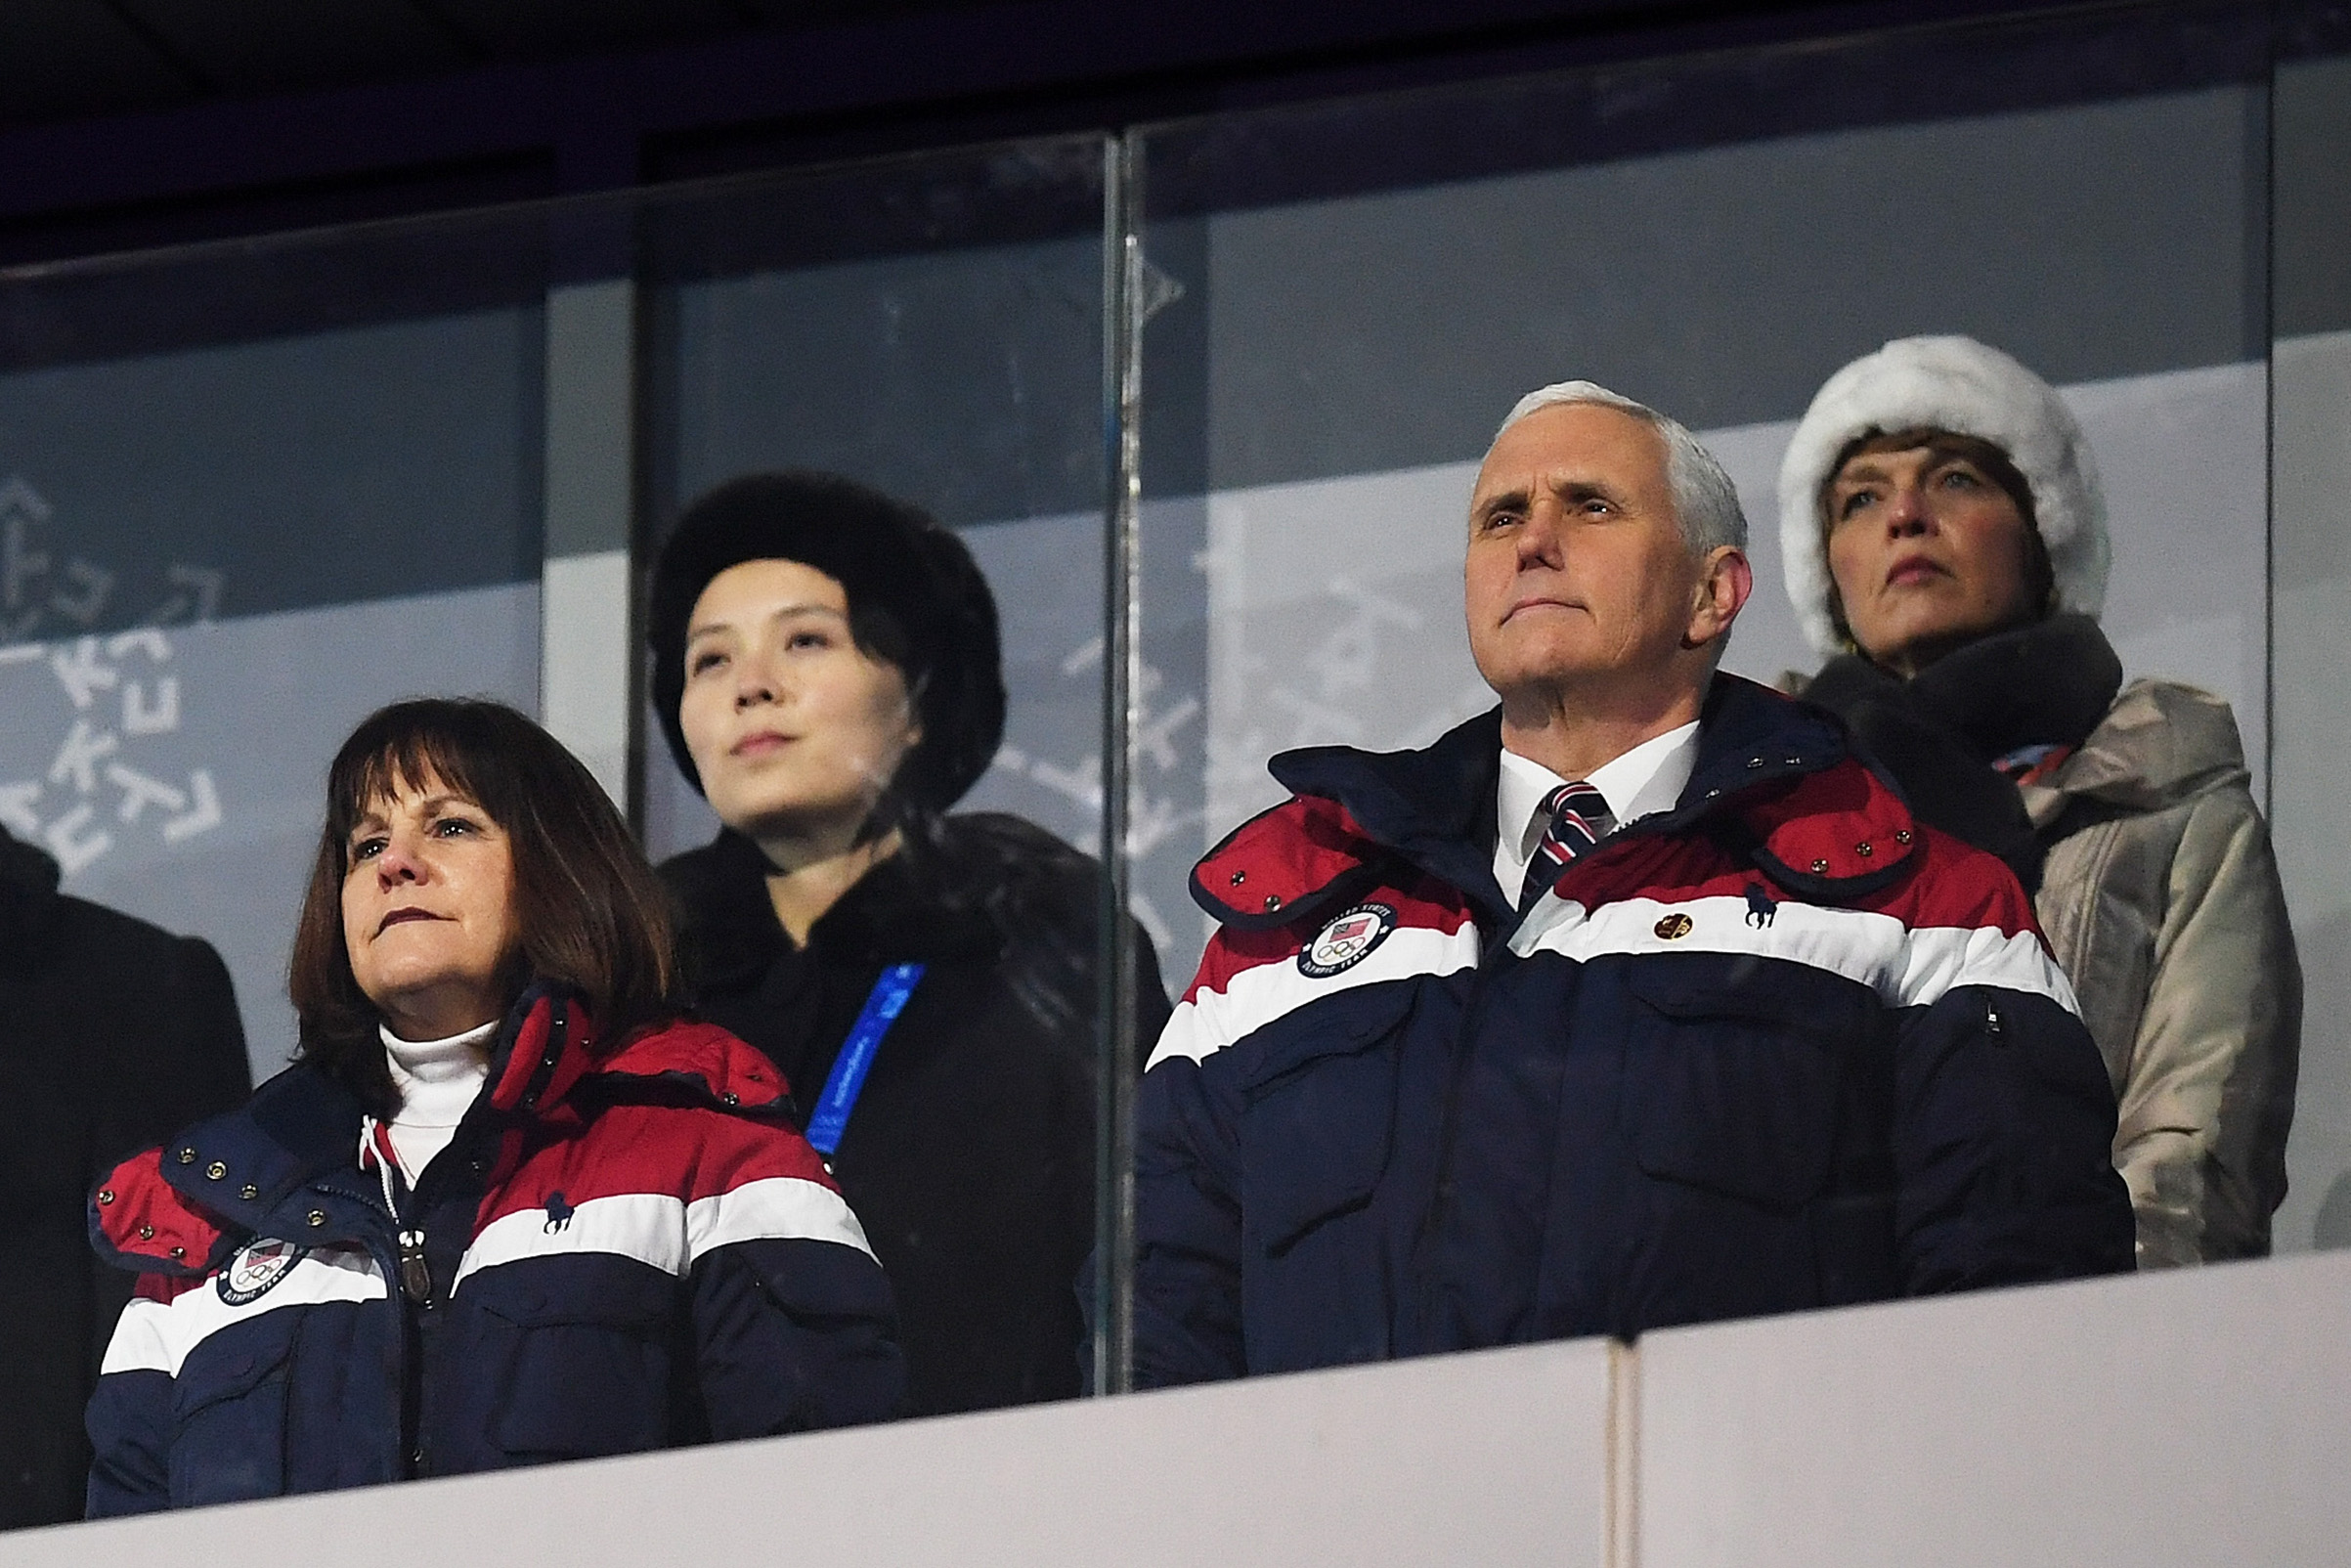 Vice President Mike Pence and his wife Karen watch on during the Opening Ceremony of the PyeongChang 2018 Winter Olympic Games. Behind pence sits Kim Yo-jong (back left), the sister of North Korean leader Kim Jong-Un, at PyeongChang Olympic Stadium in South Korea on Feb. 9, 2018.